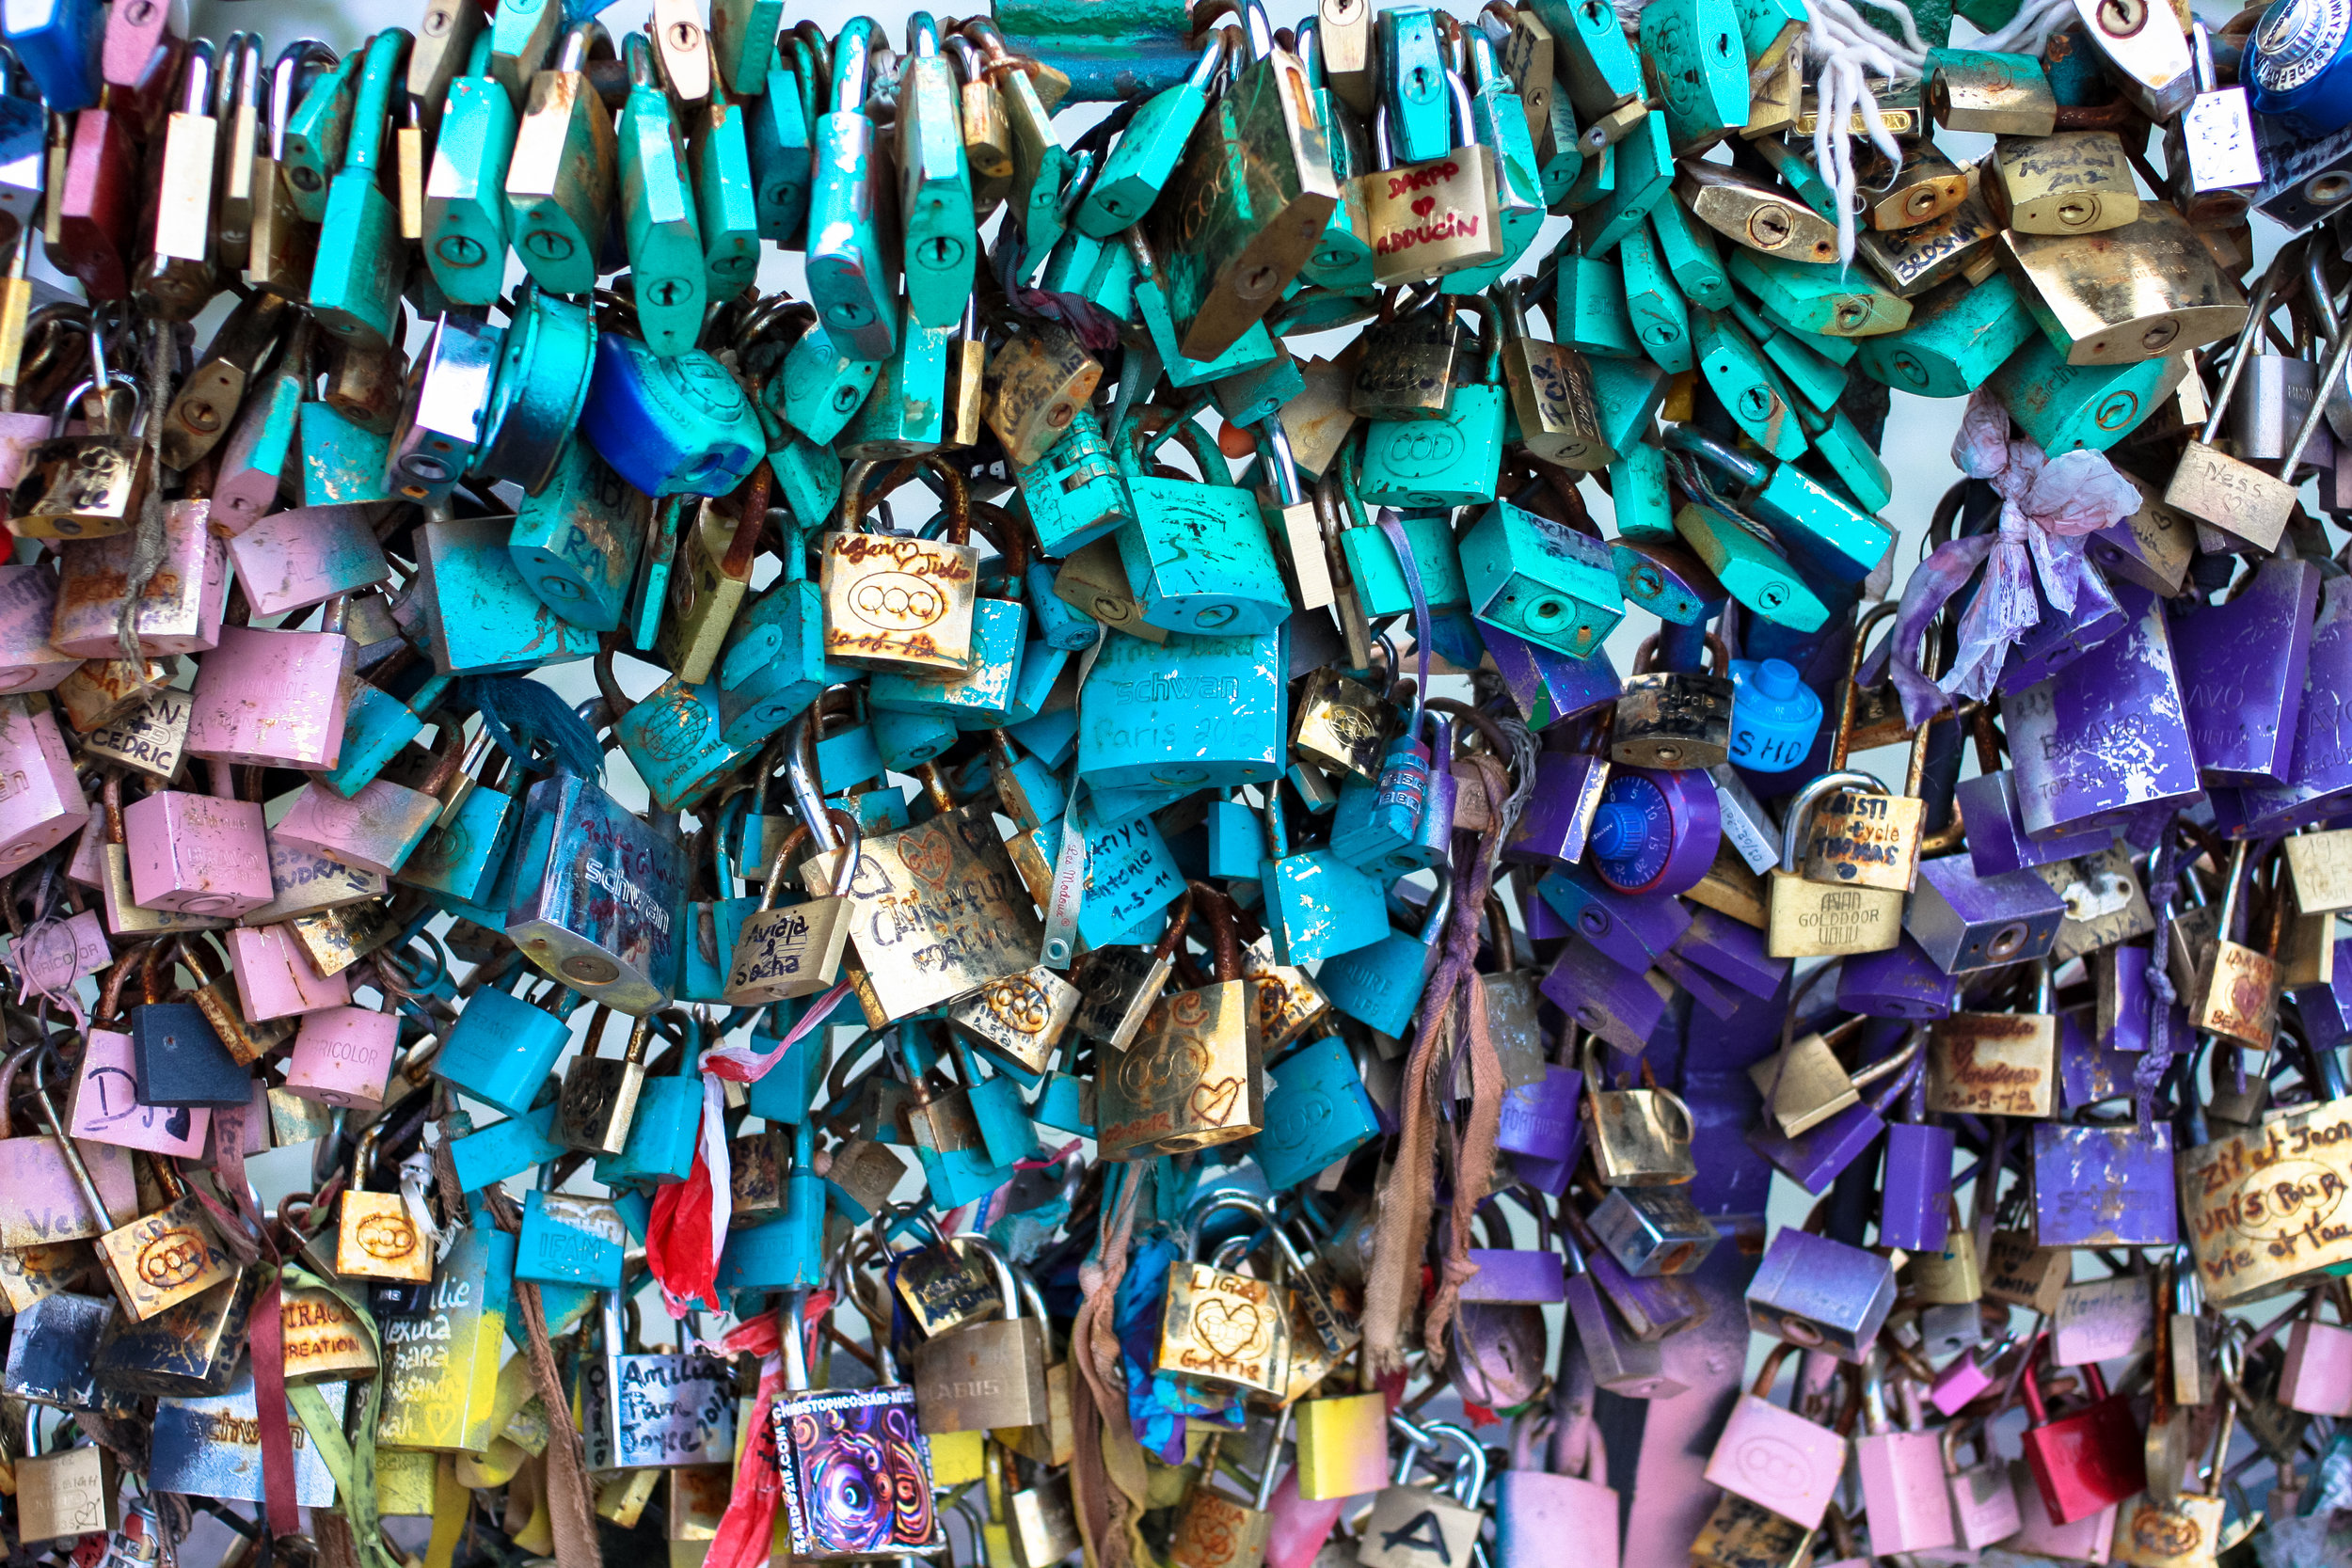 paris love locks @rebeccaplotnick